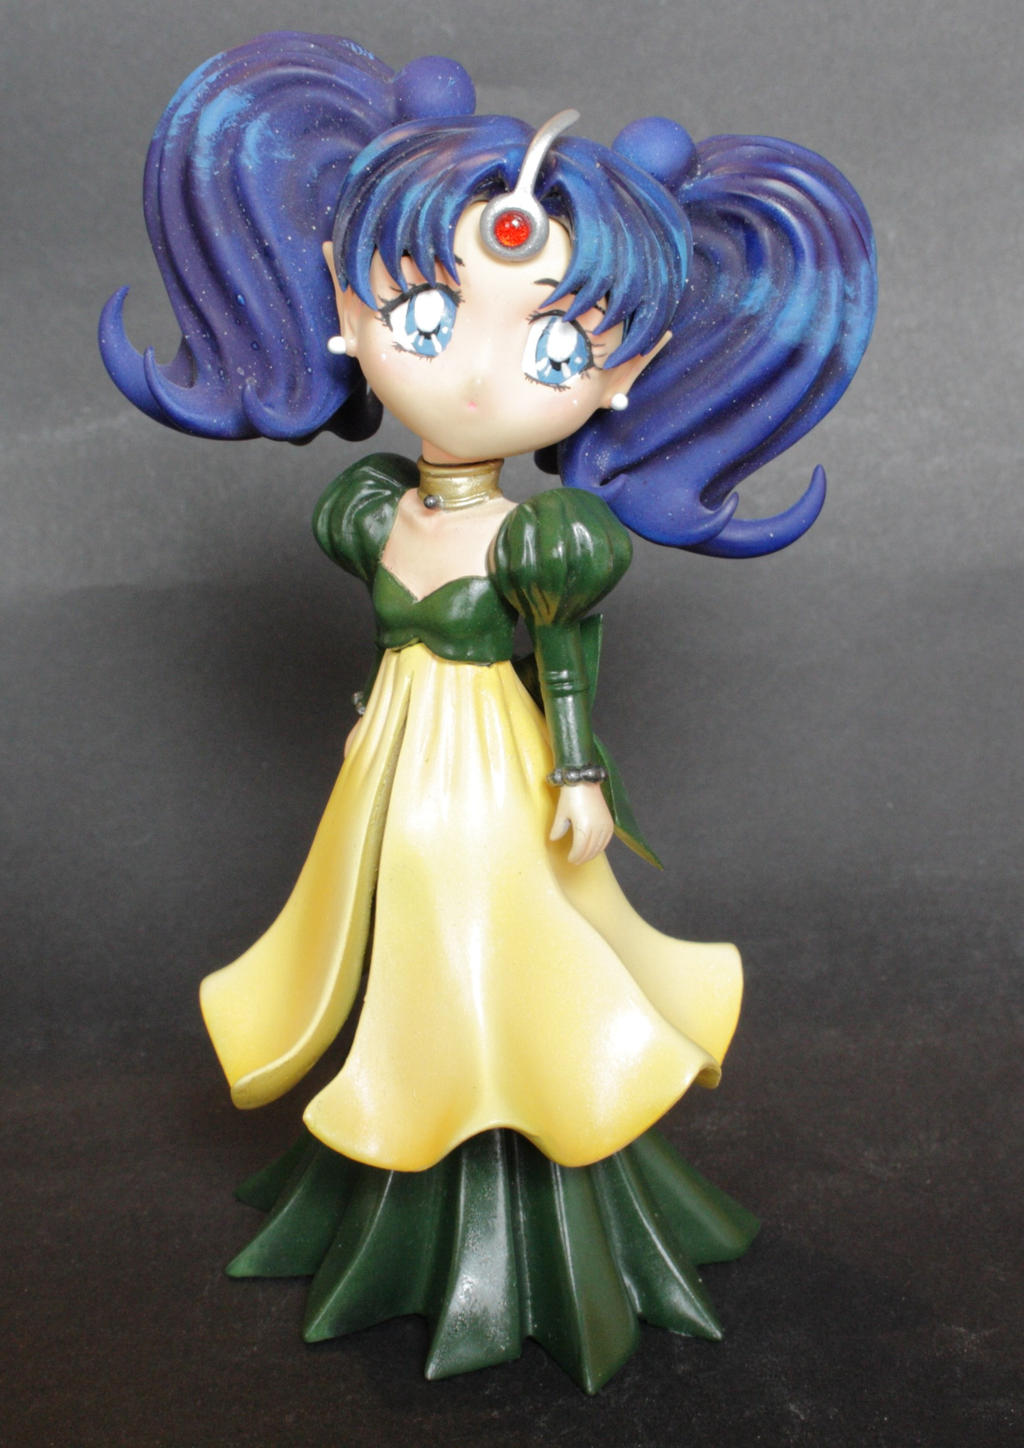 1/6 Nehelenia child vers. - Sailor Moon by Schuldigkun